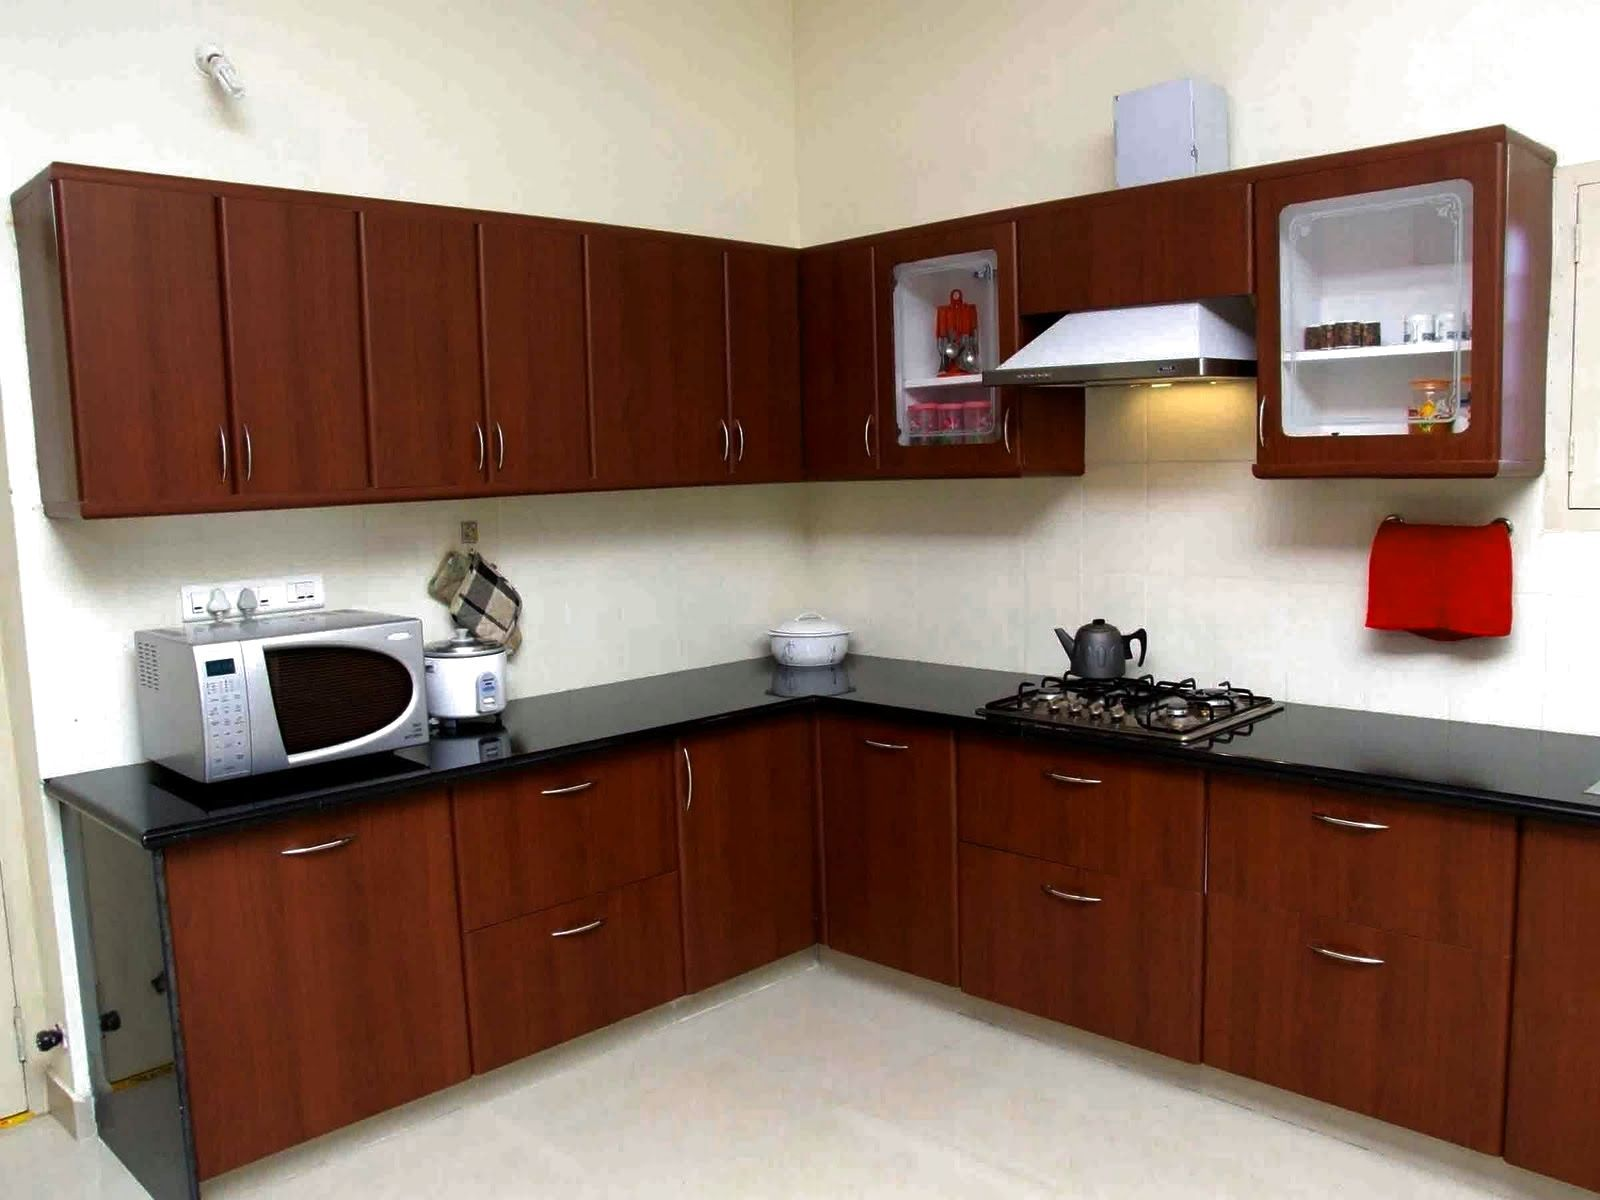 Kitchen Cabinets Design Ideas 2016 - Seasons of Home ...